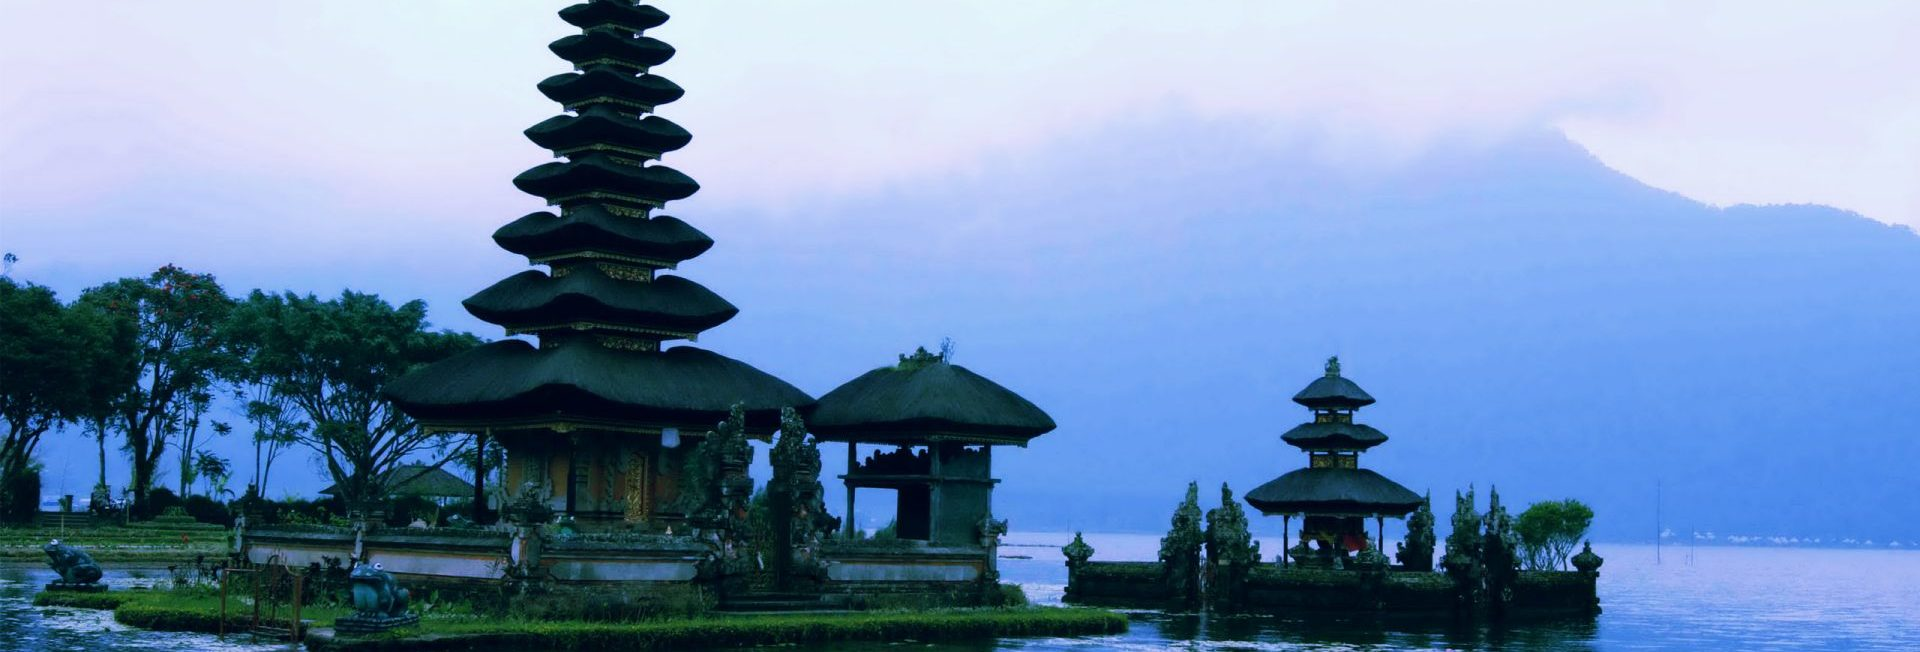 Bali-Temple-Indonesia-Desktop-Wallpapers